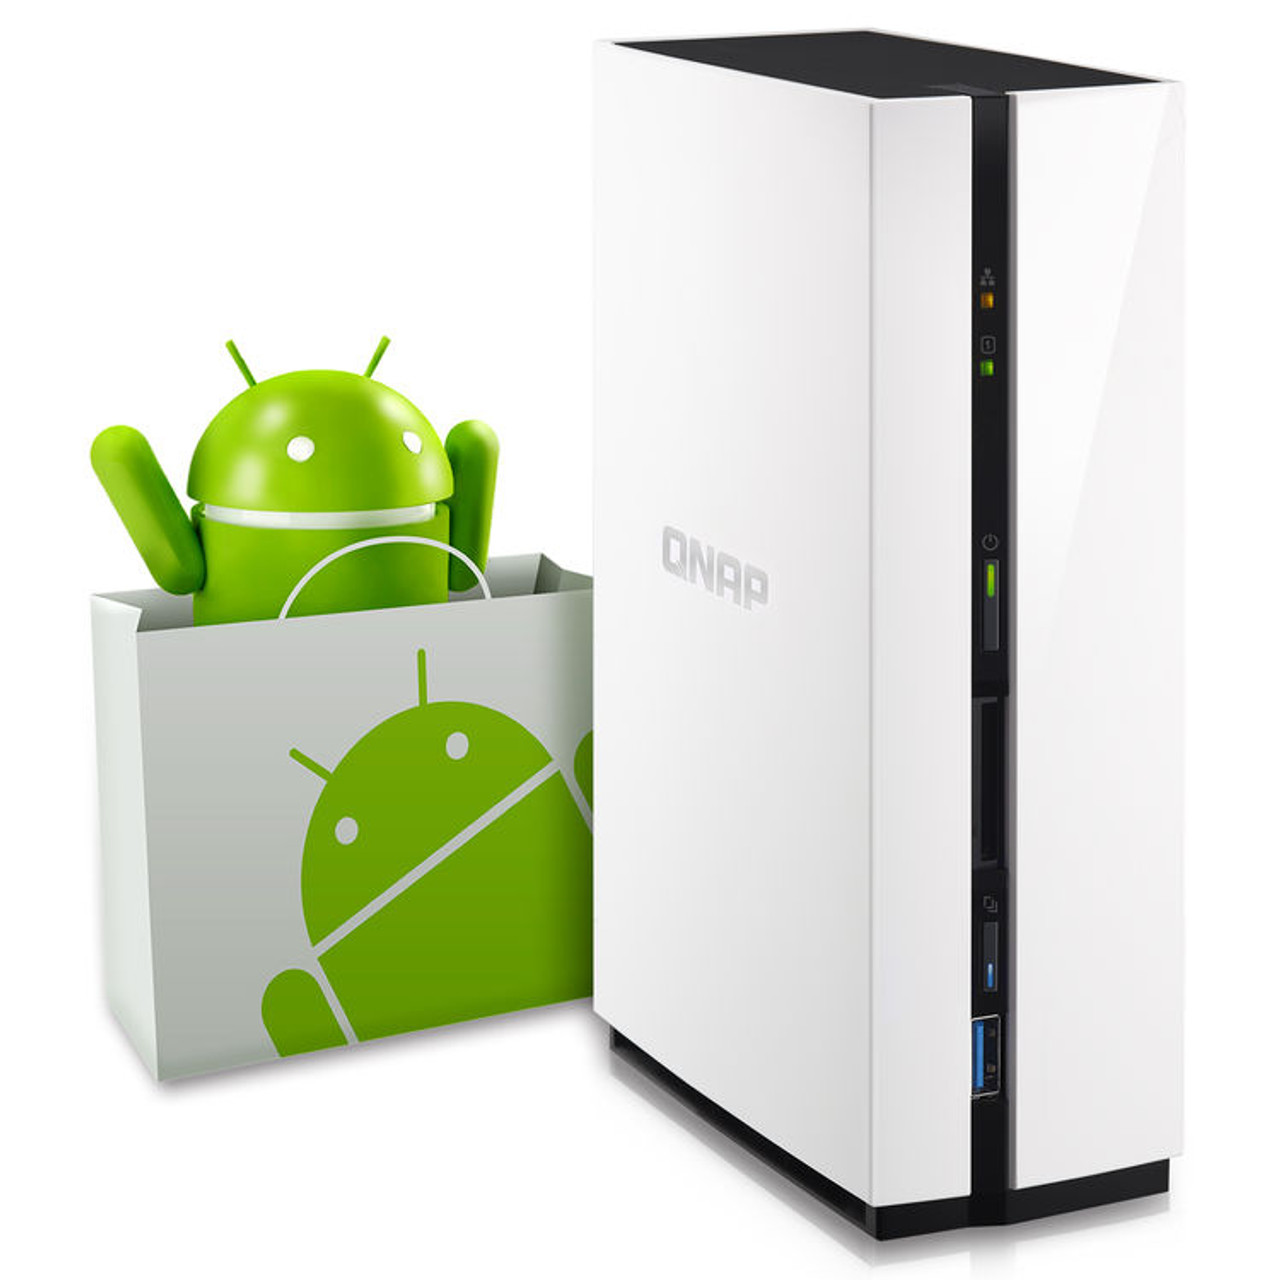 QNAP 1-Bay Personal Cloud NAS QTS and Android with DLNA